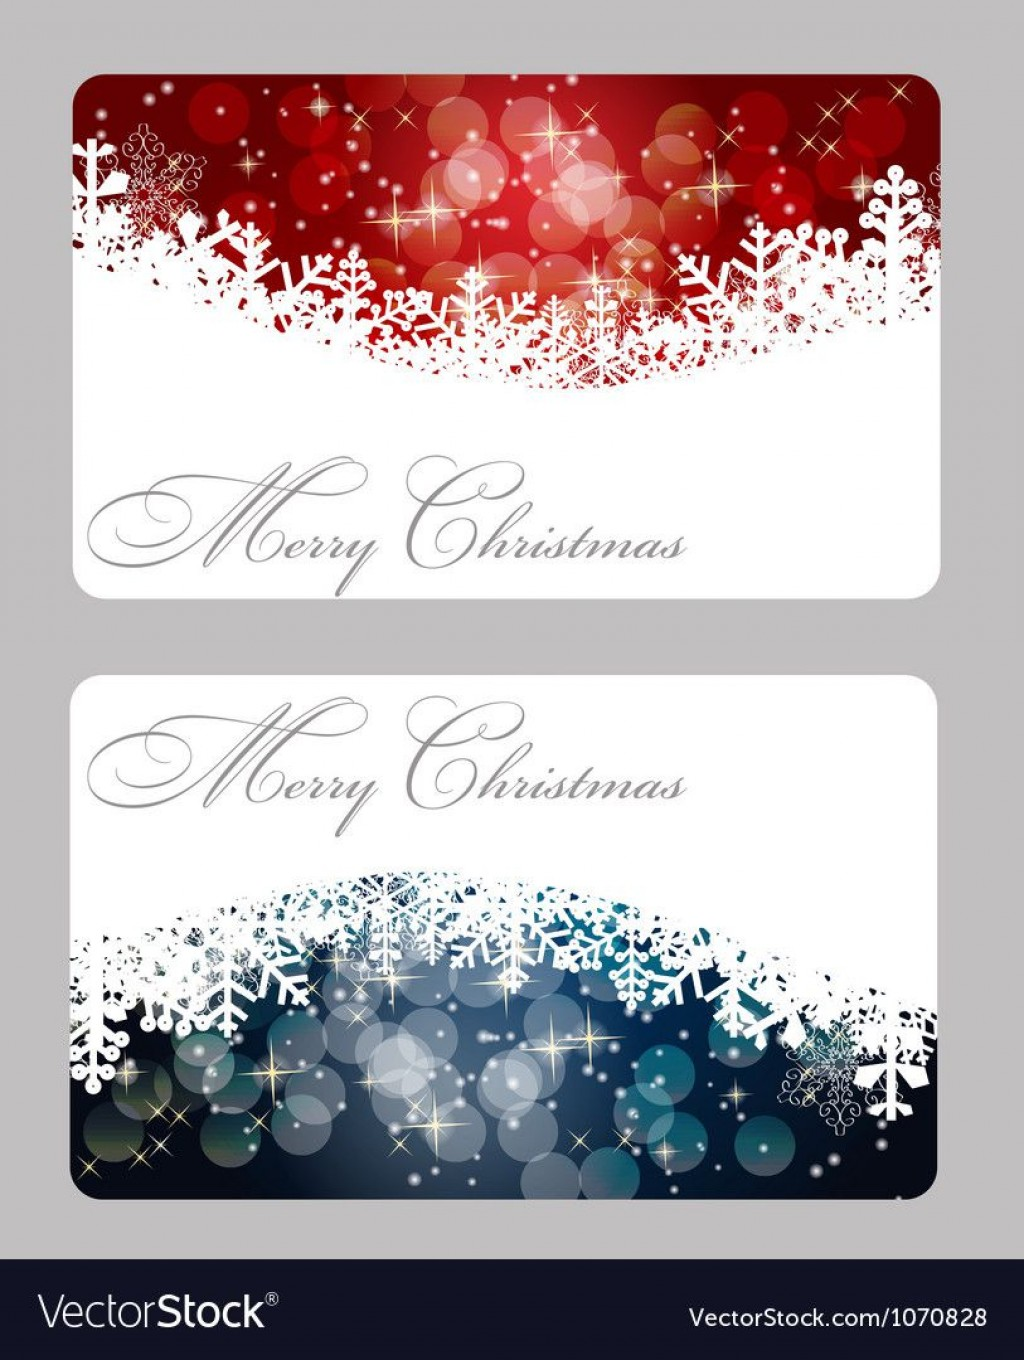 006 Frightening Free Photo Christma Card Template Concept  Templates For Photoshop OnlineLarge